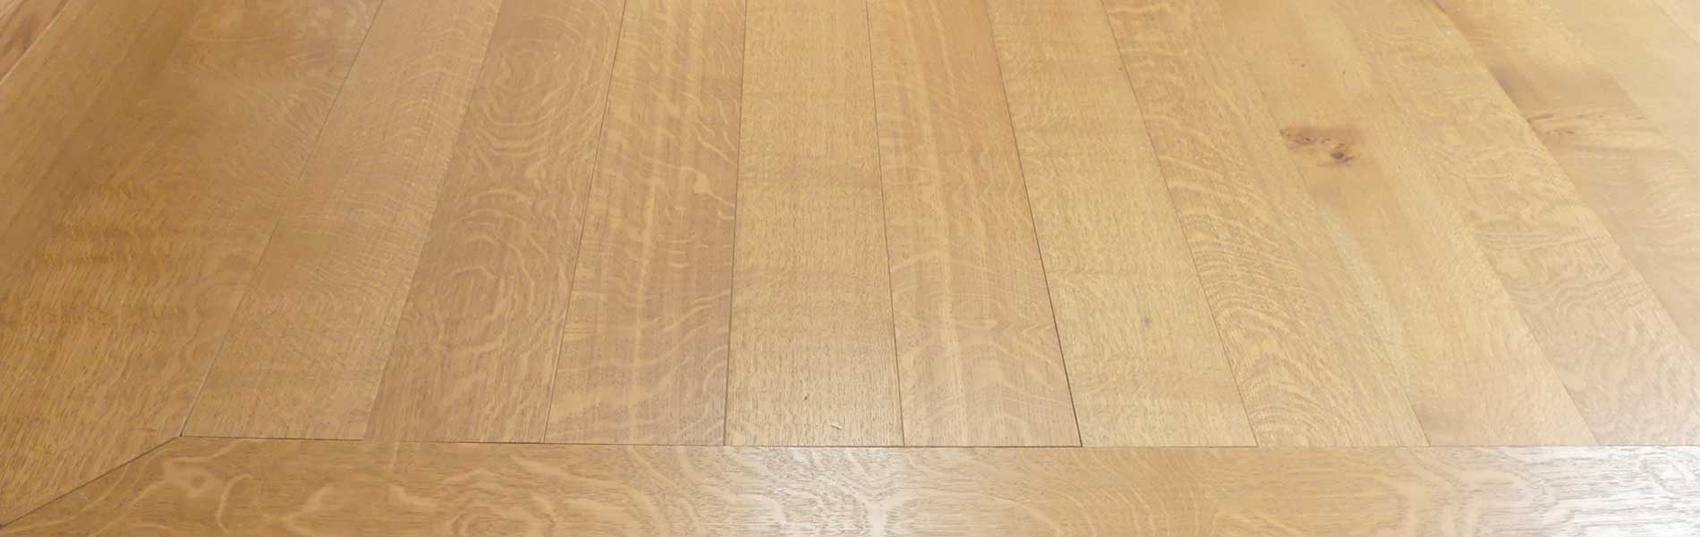 Engineered Flooring header